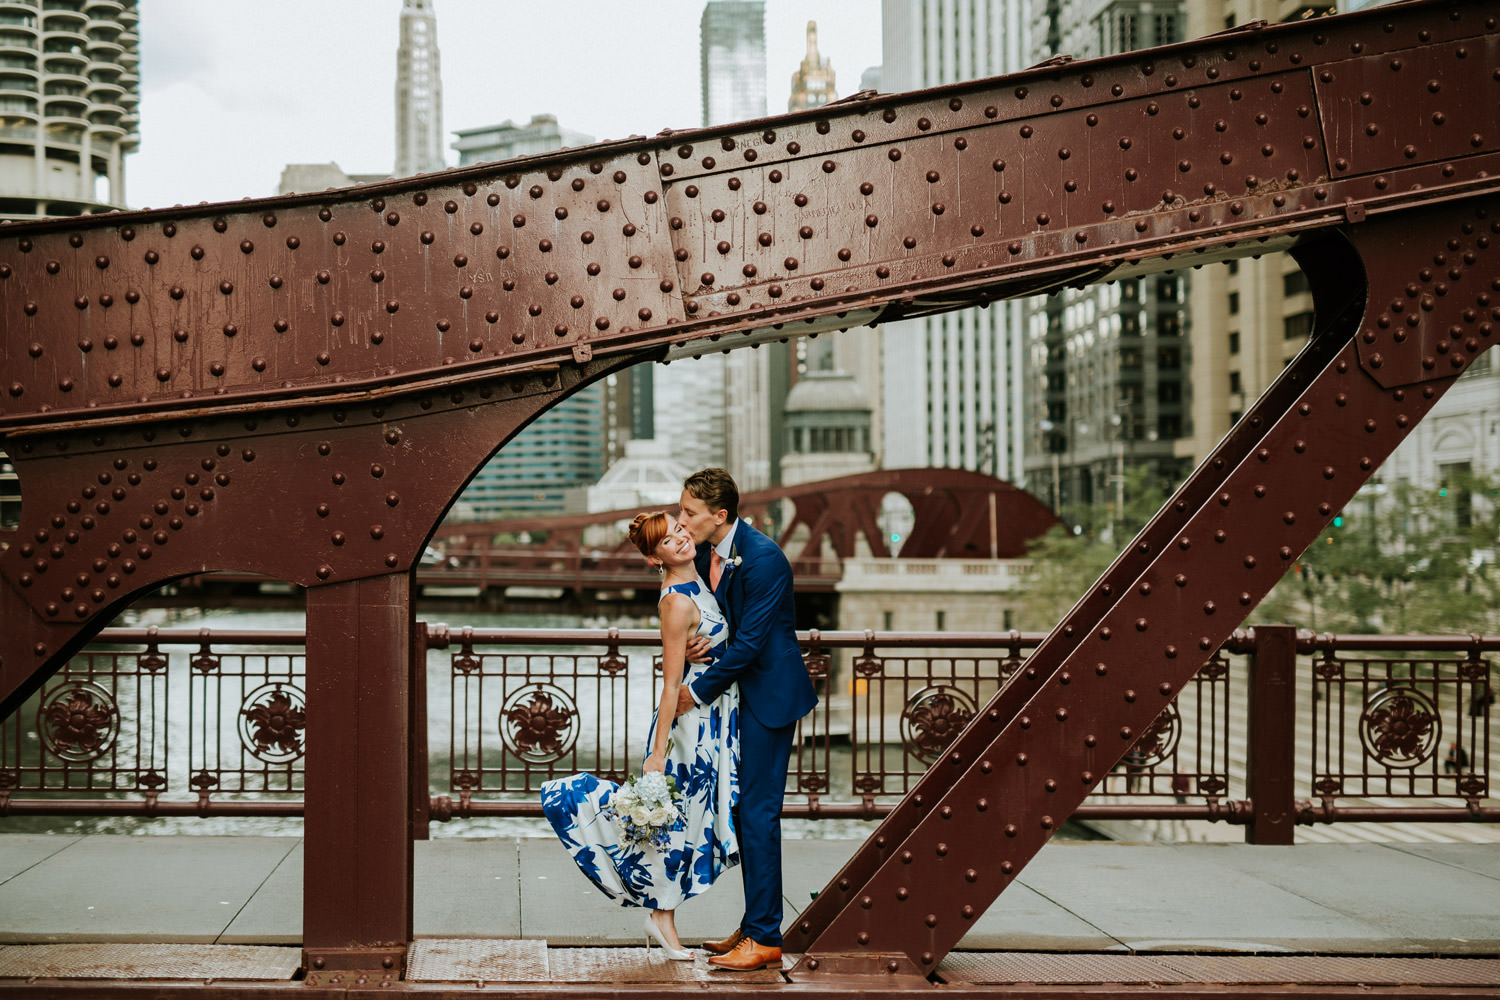 Chicago elopement photographer captures the portrait of the bride and groom in downtown